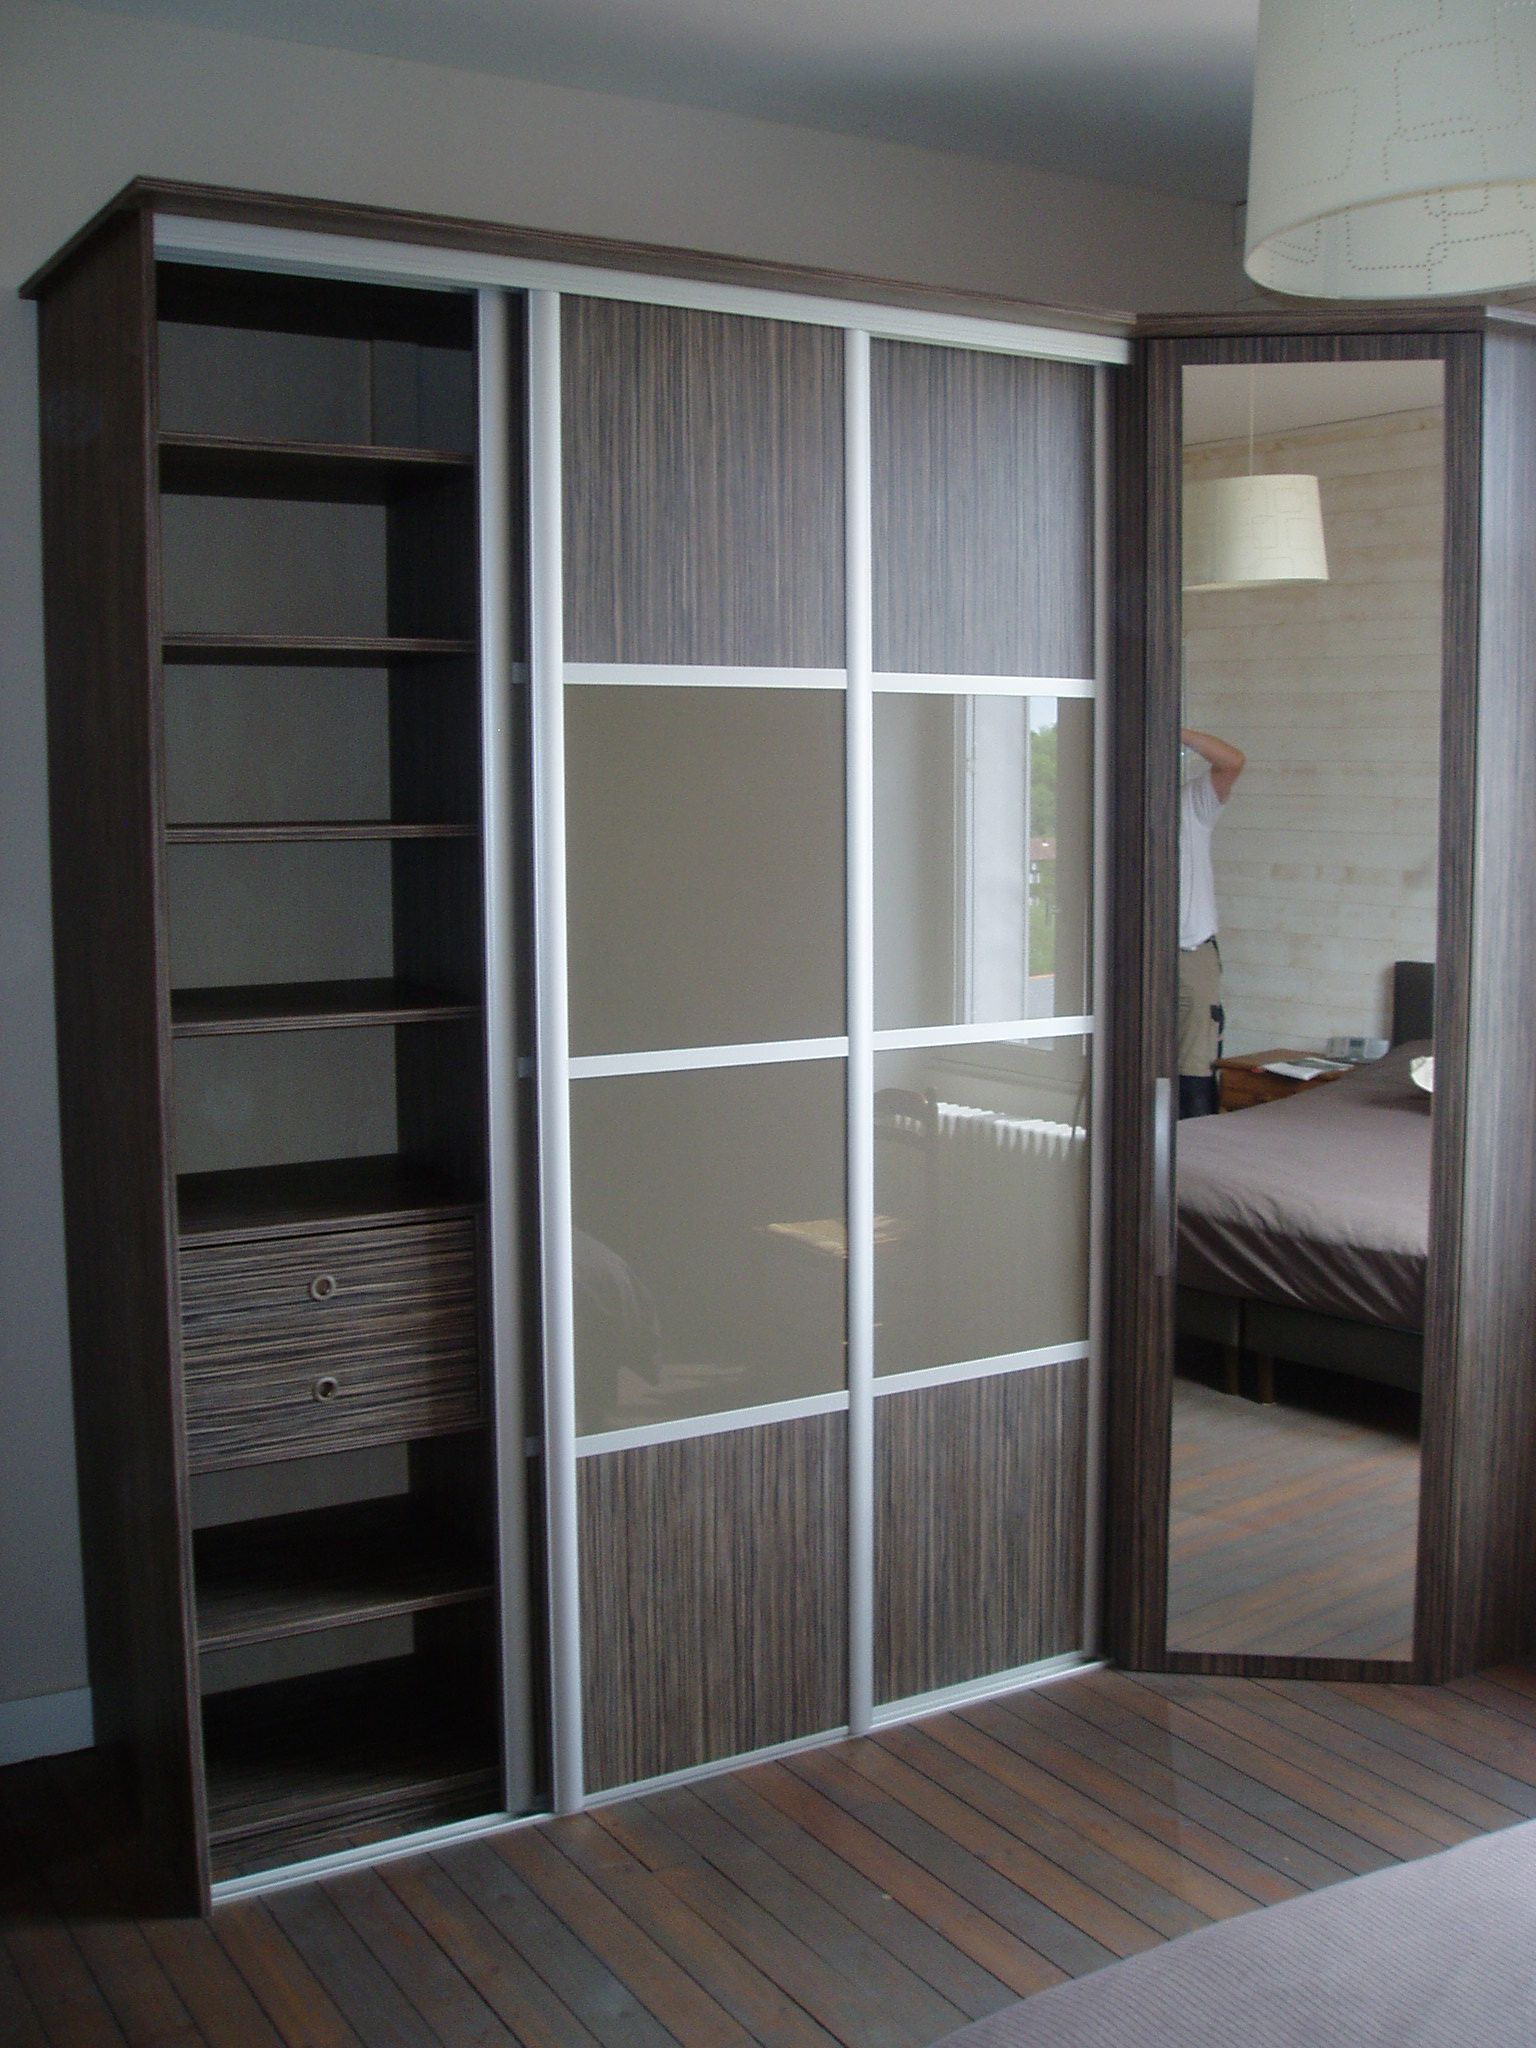 dressing sur mesure avec portes coulissantes pos et con u. Black Bedroom Furniture Sets. Home Design Ideas